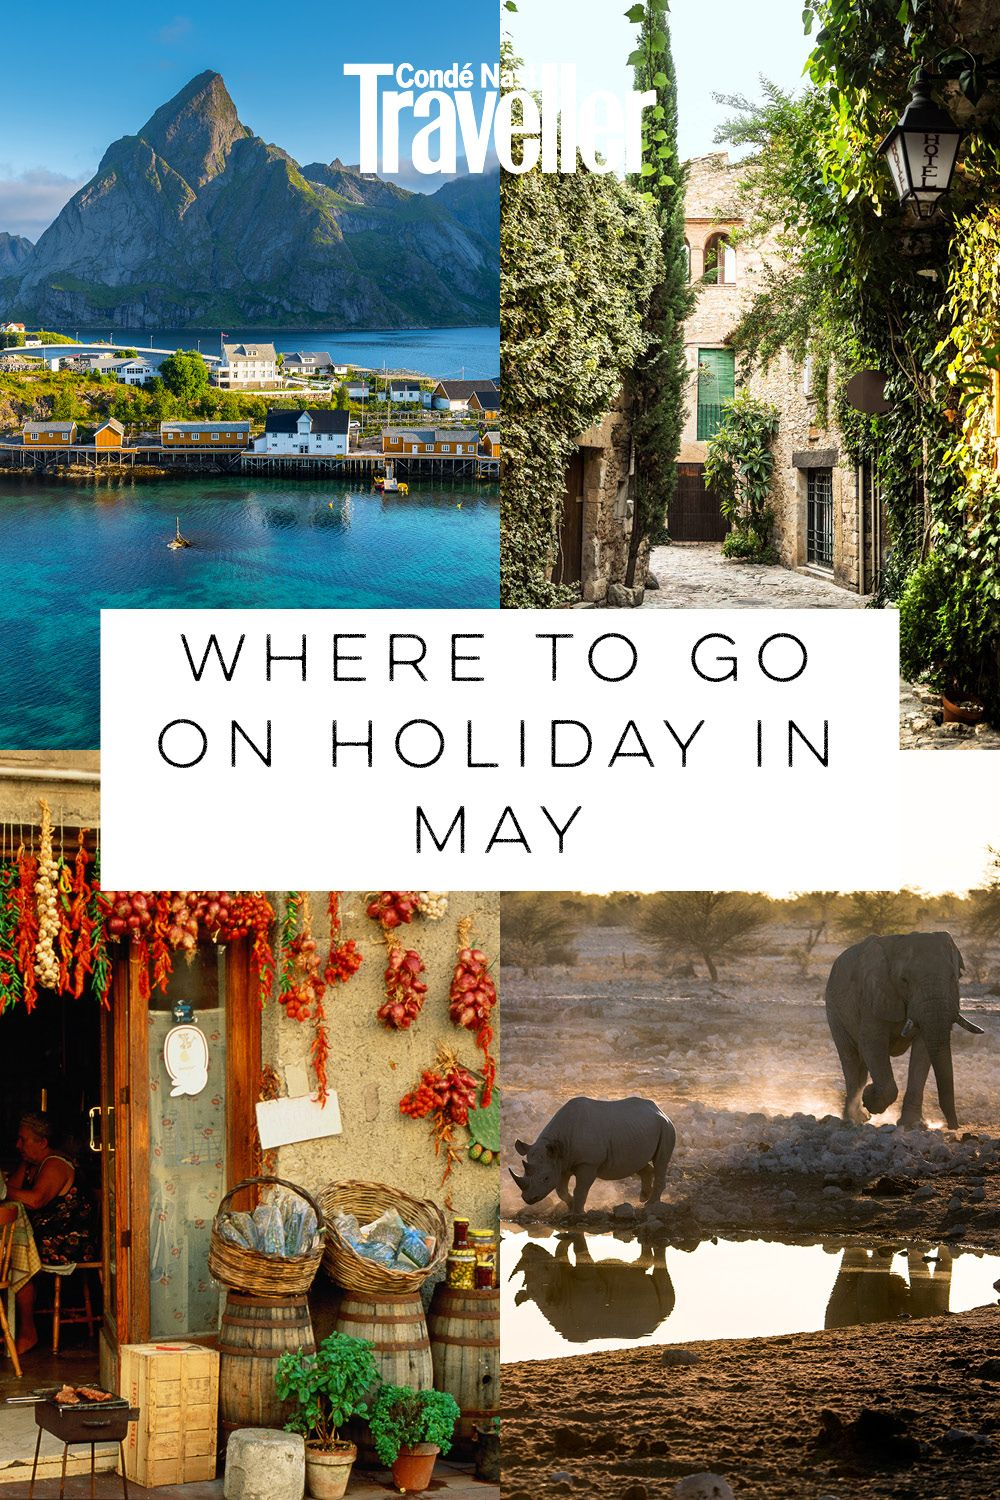 Where To Go On Holiday In May: 20 Top Destinations